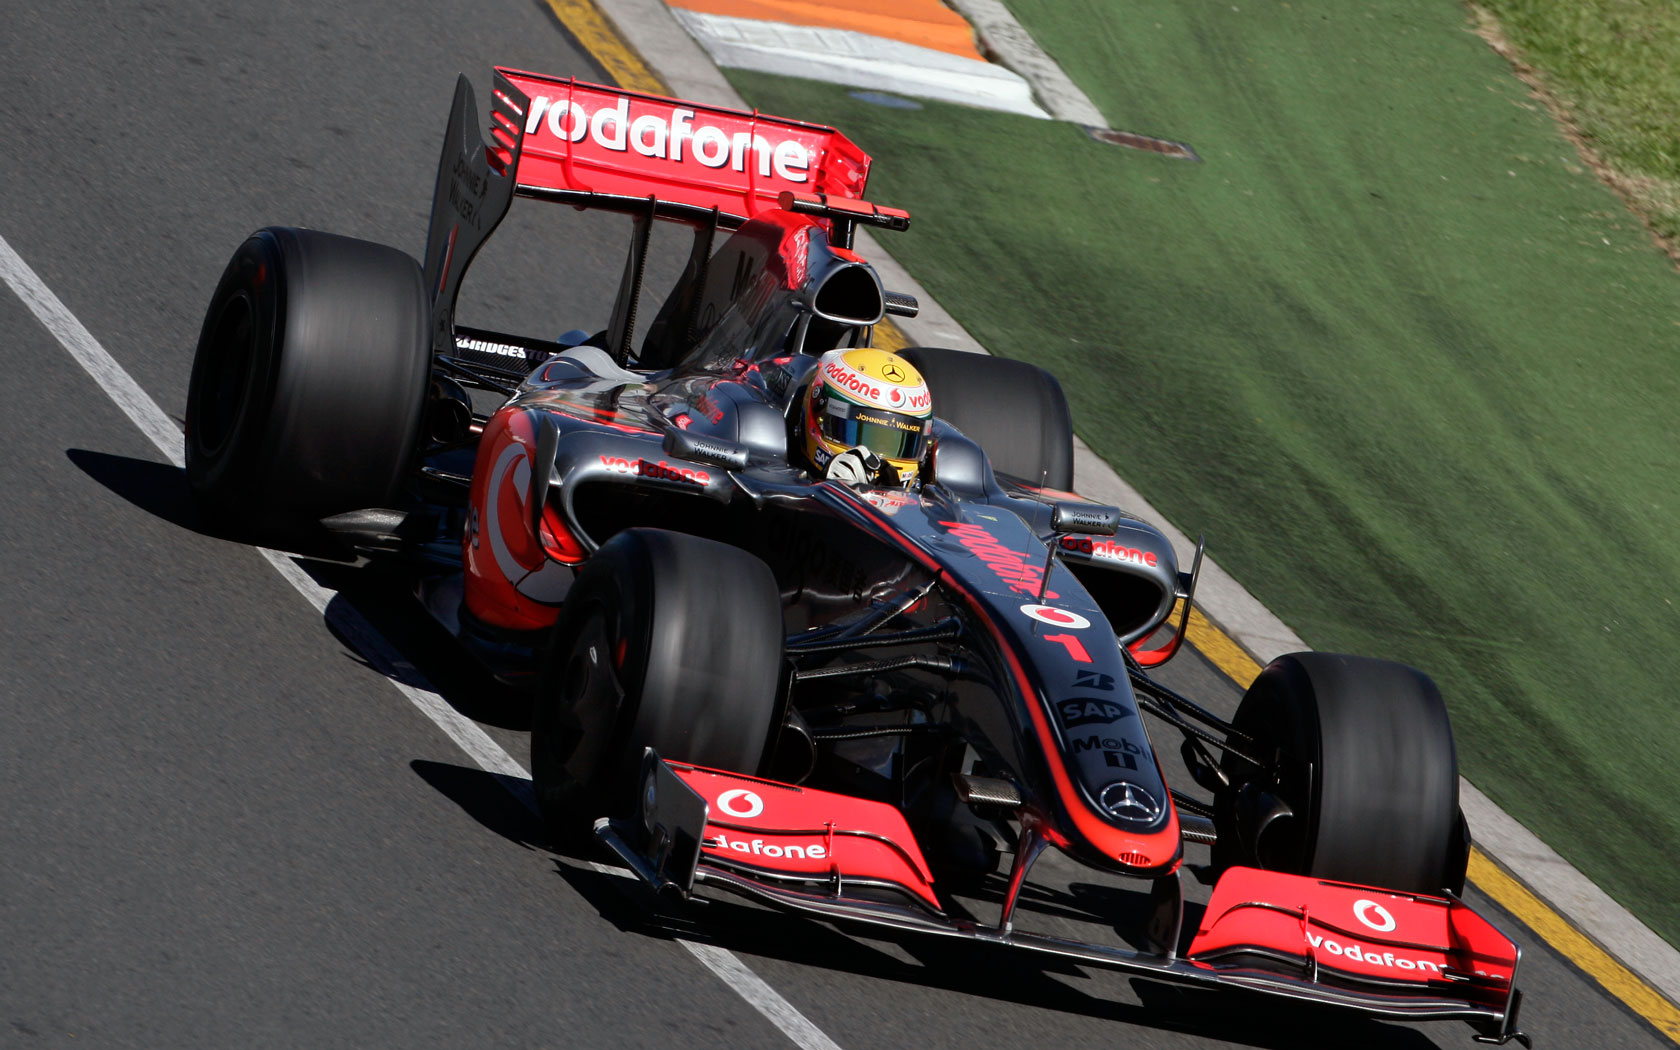 HD Wallpapers 2009 Formula 1 Grand Prix of Australia